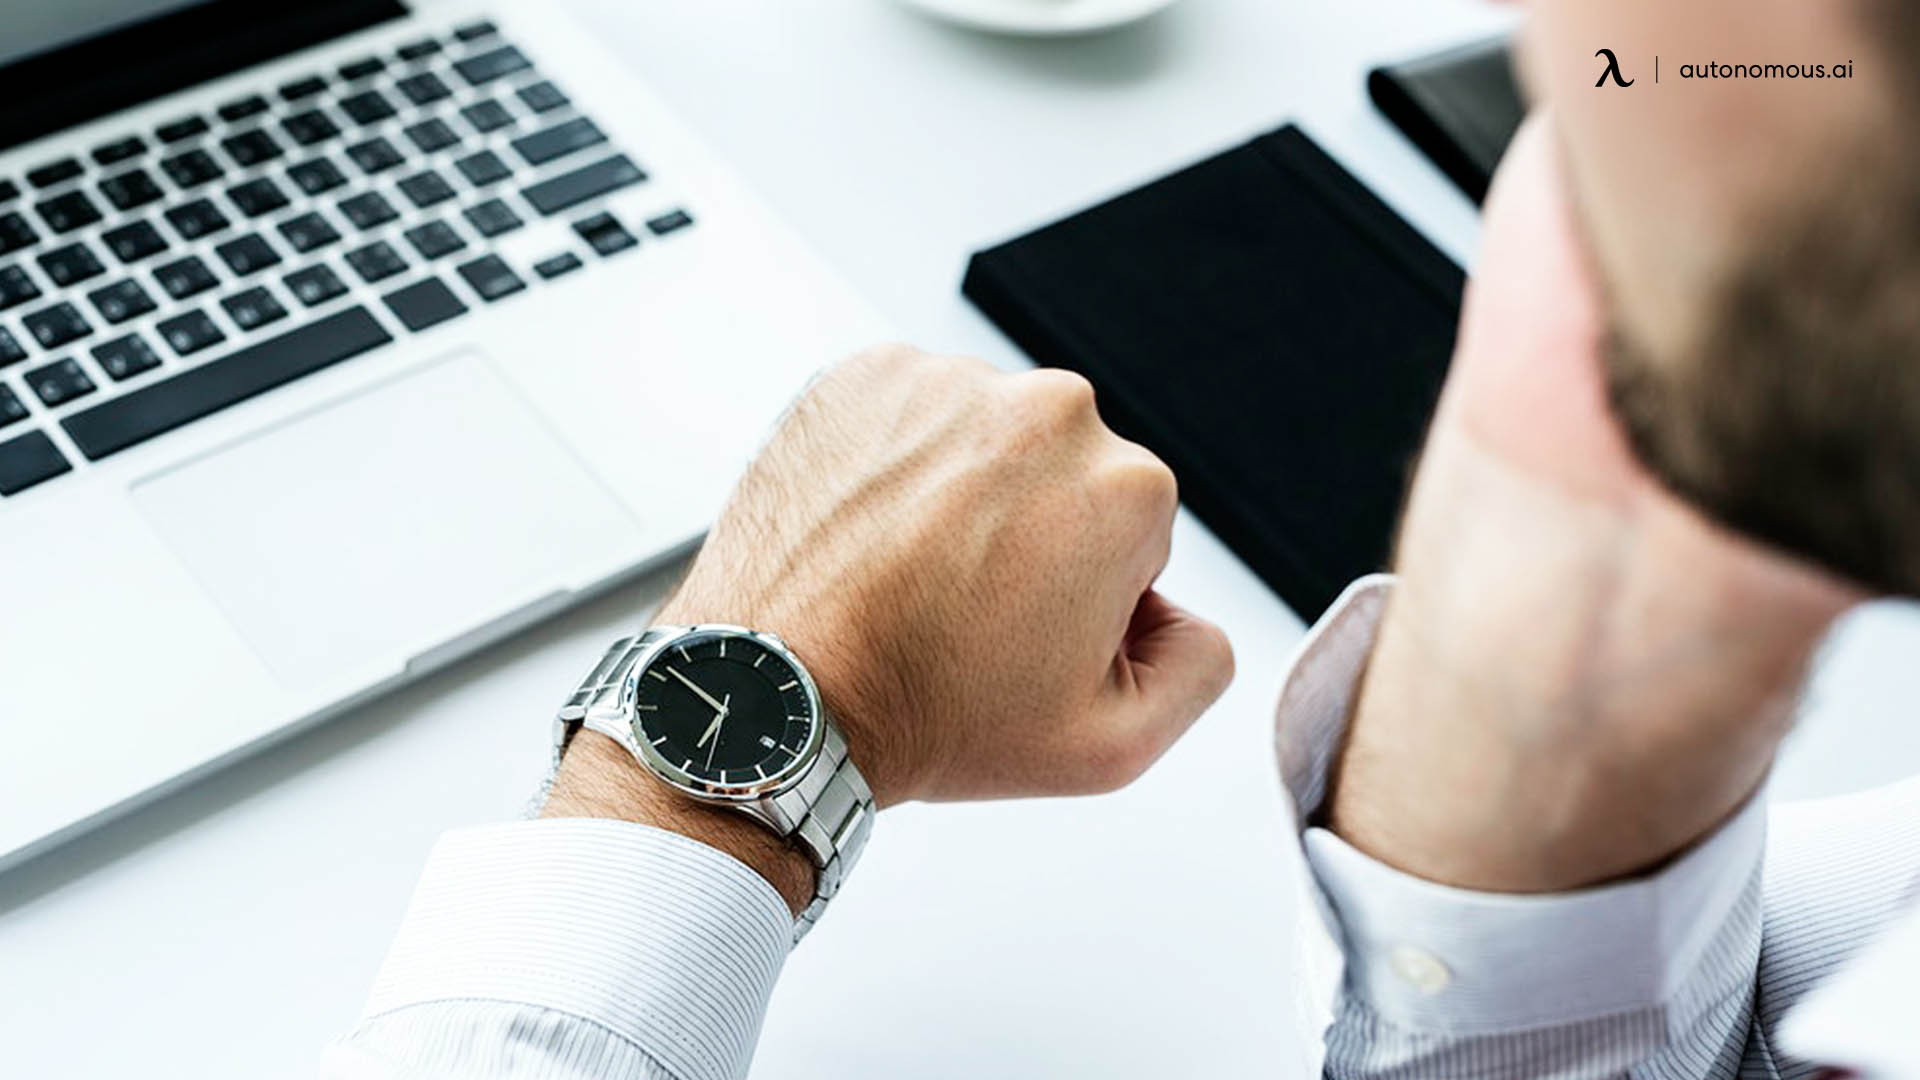 Consider the Time Zones While Planning Meetings